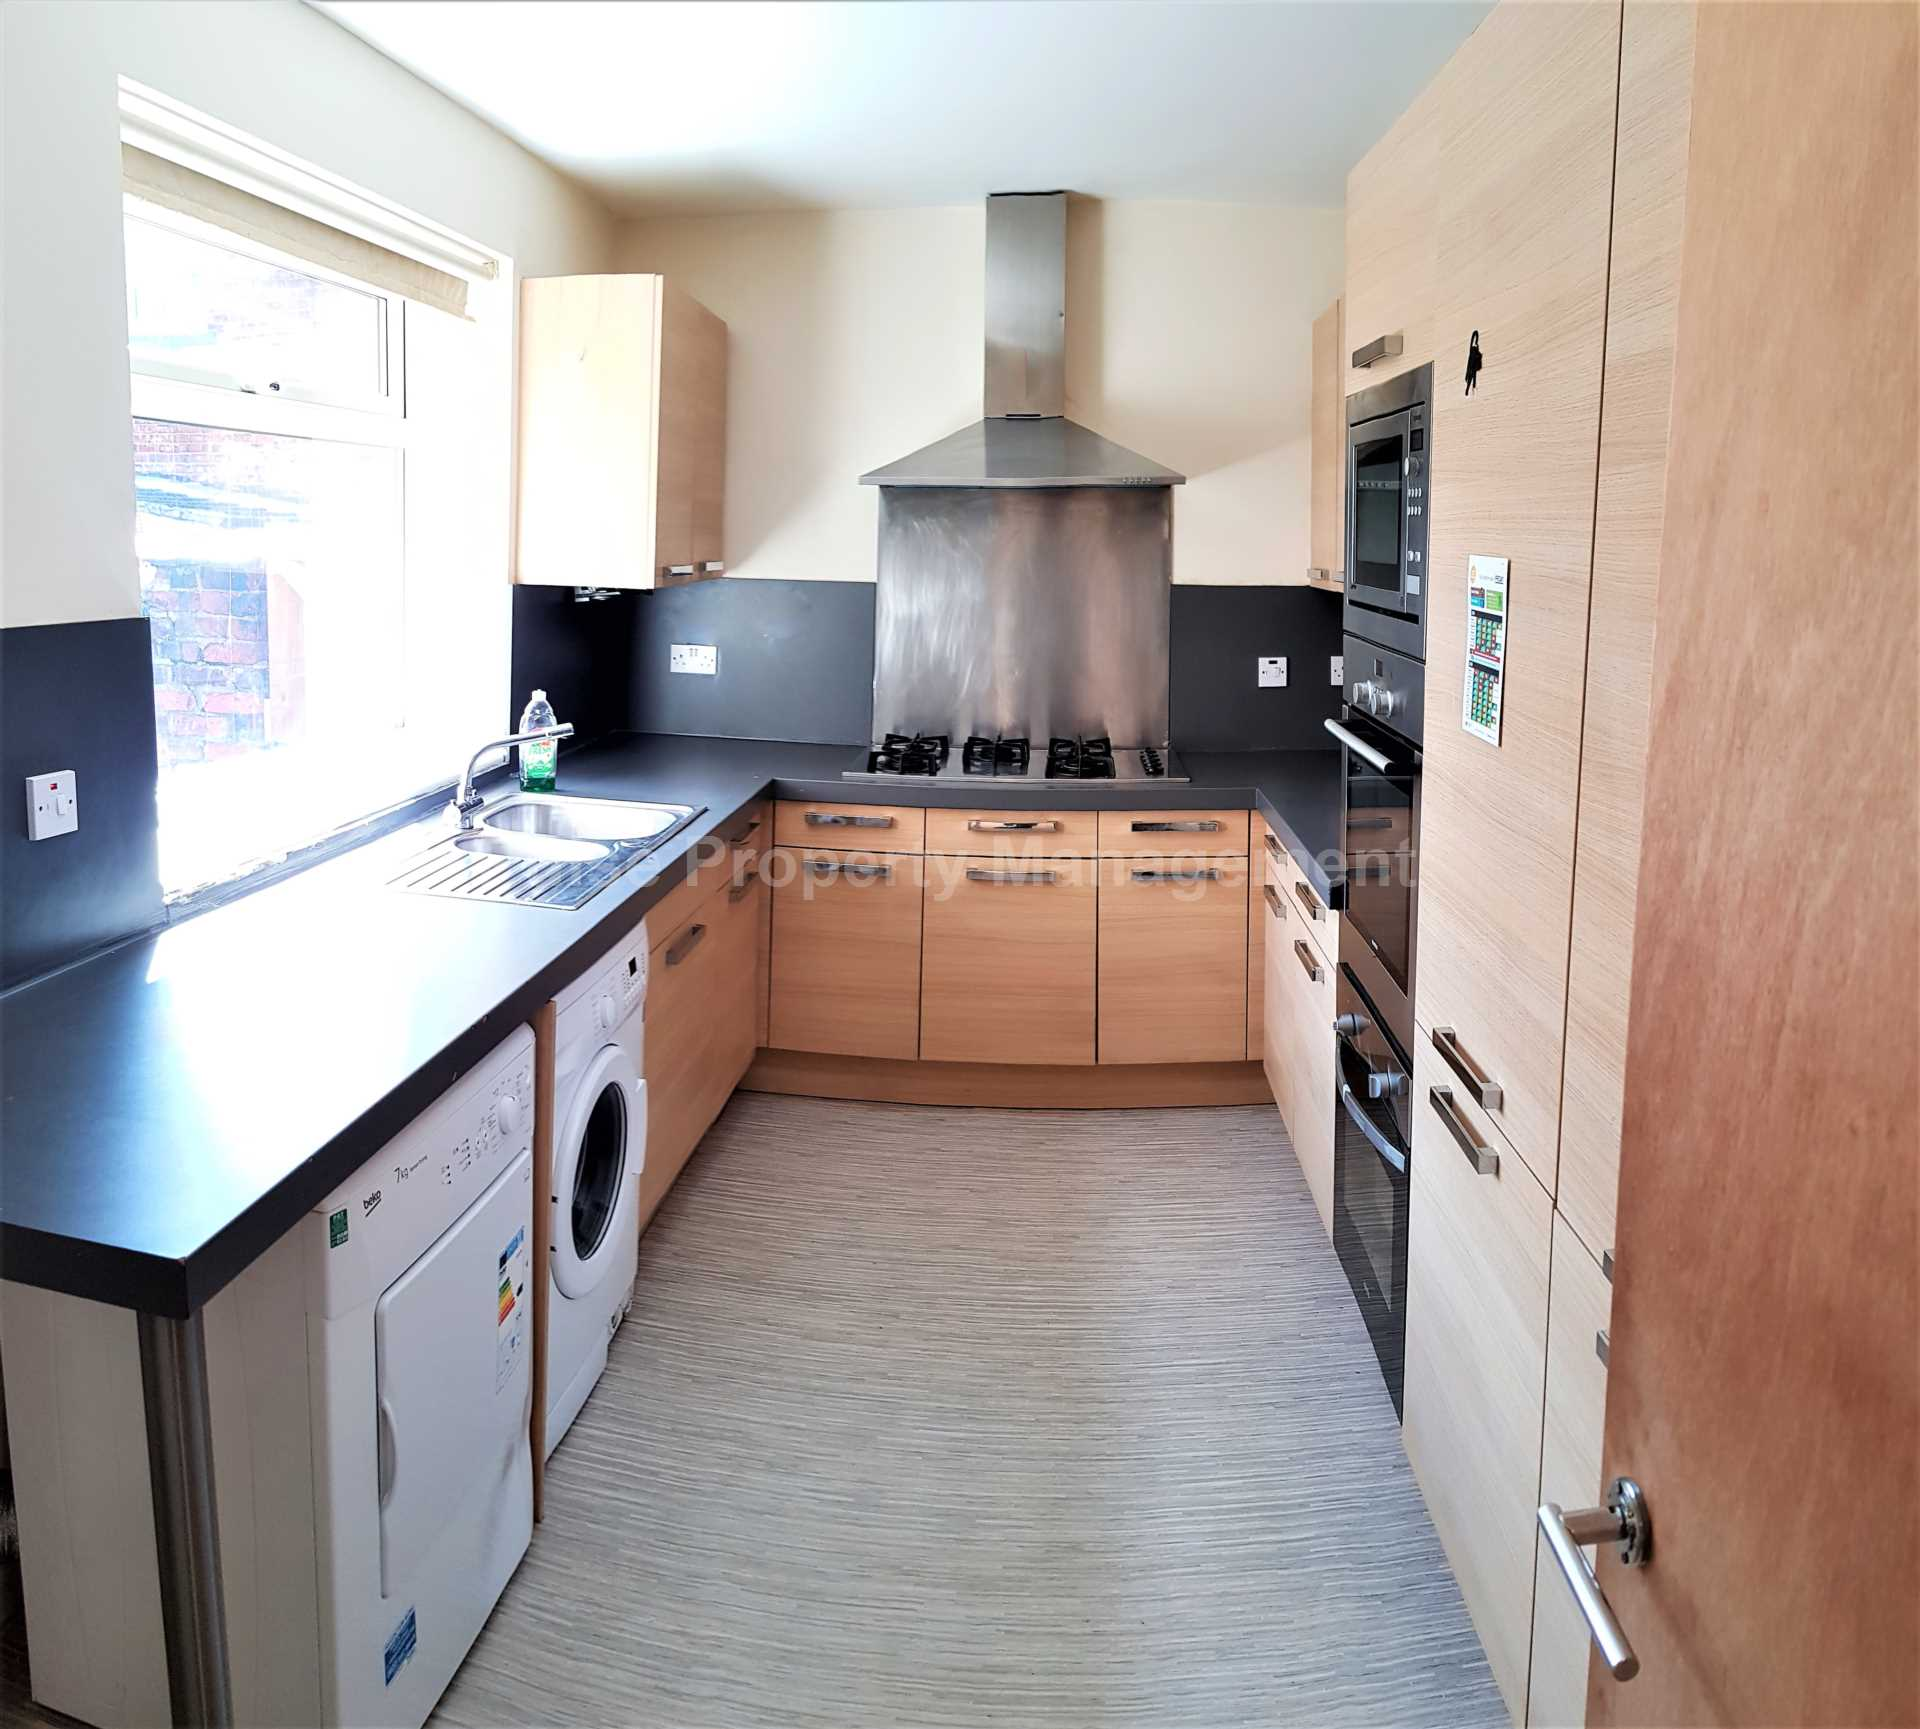 6 bed House (unspecified) for rent in Manchester. From Pulse Property Management Ltd